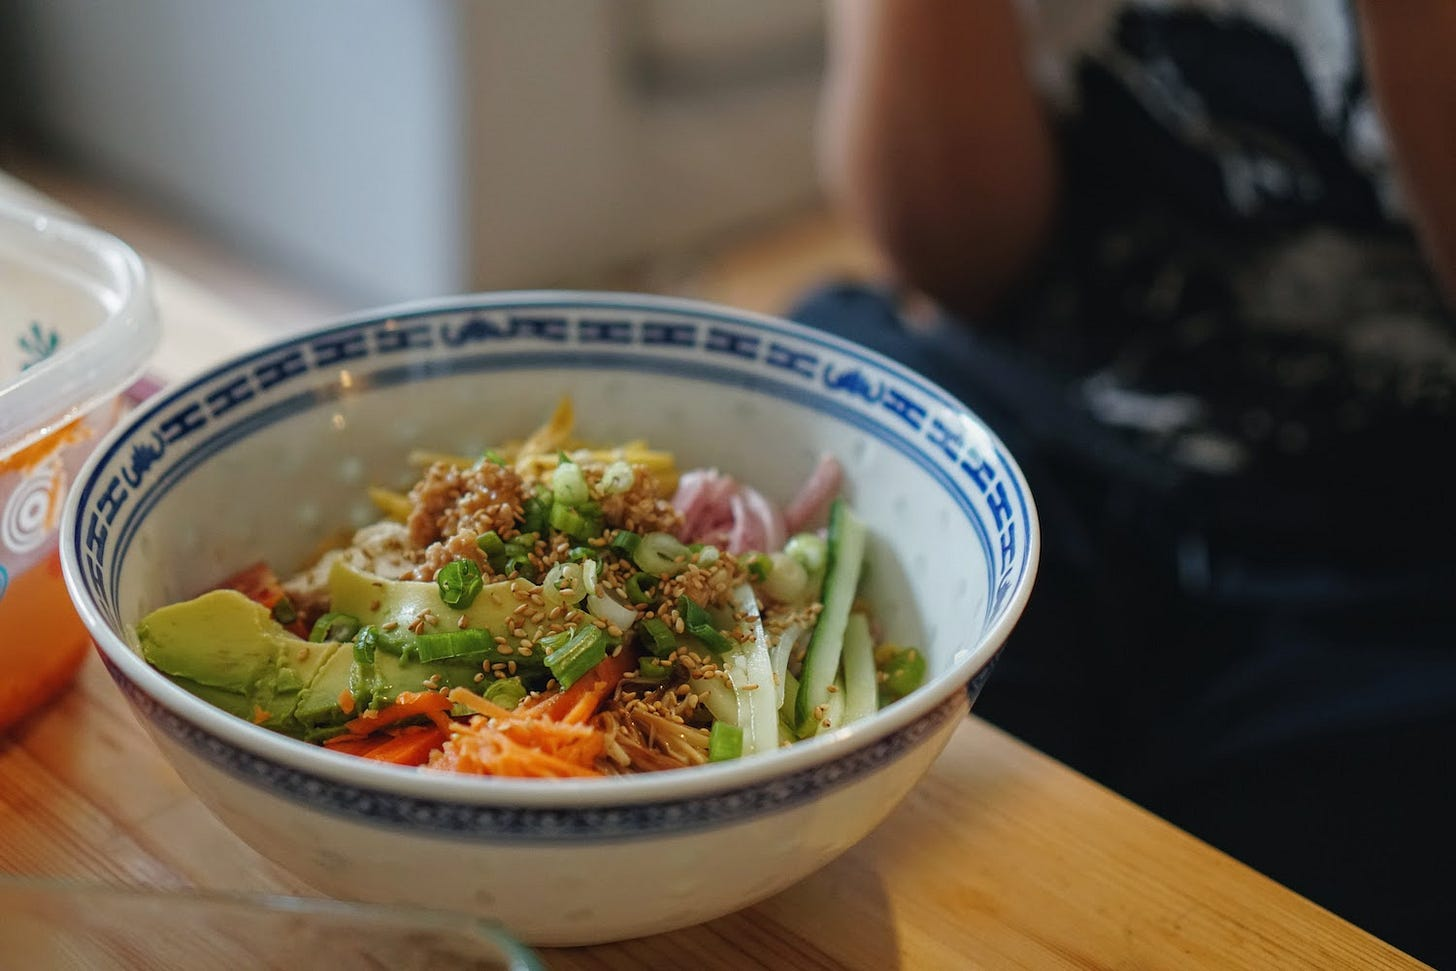 Hiyashi chuka in a bowl in front of Yoko